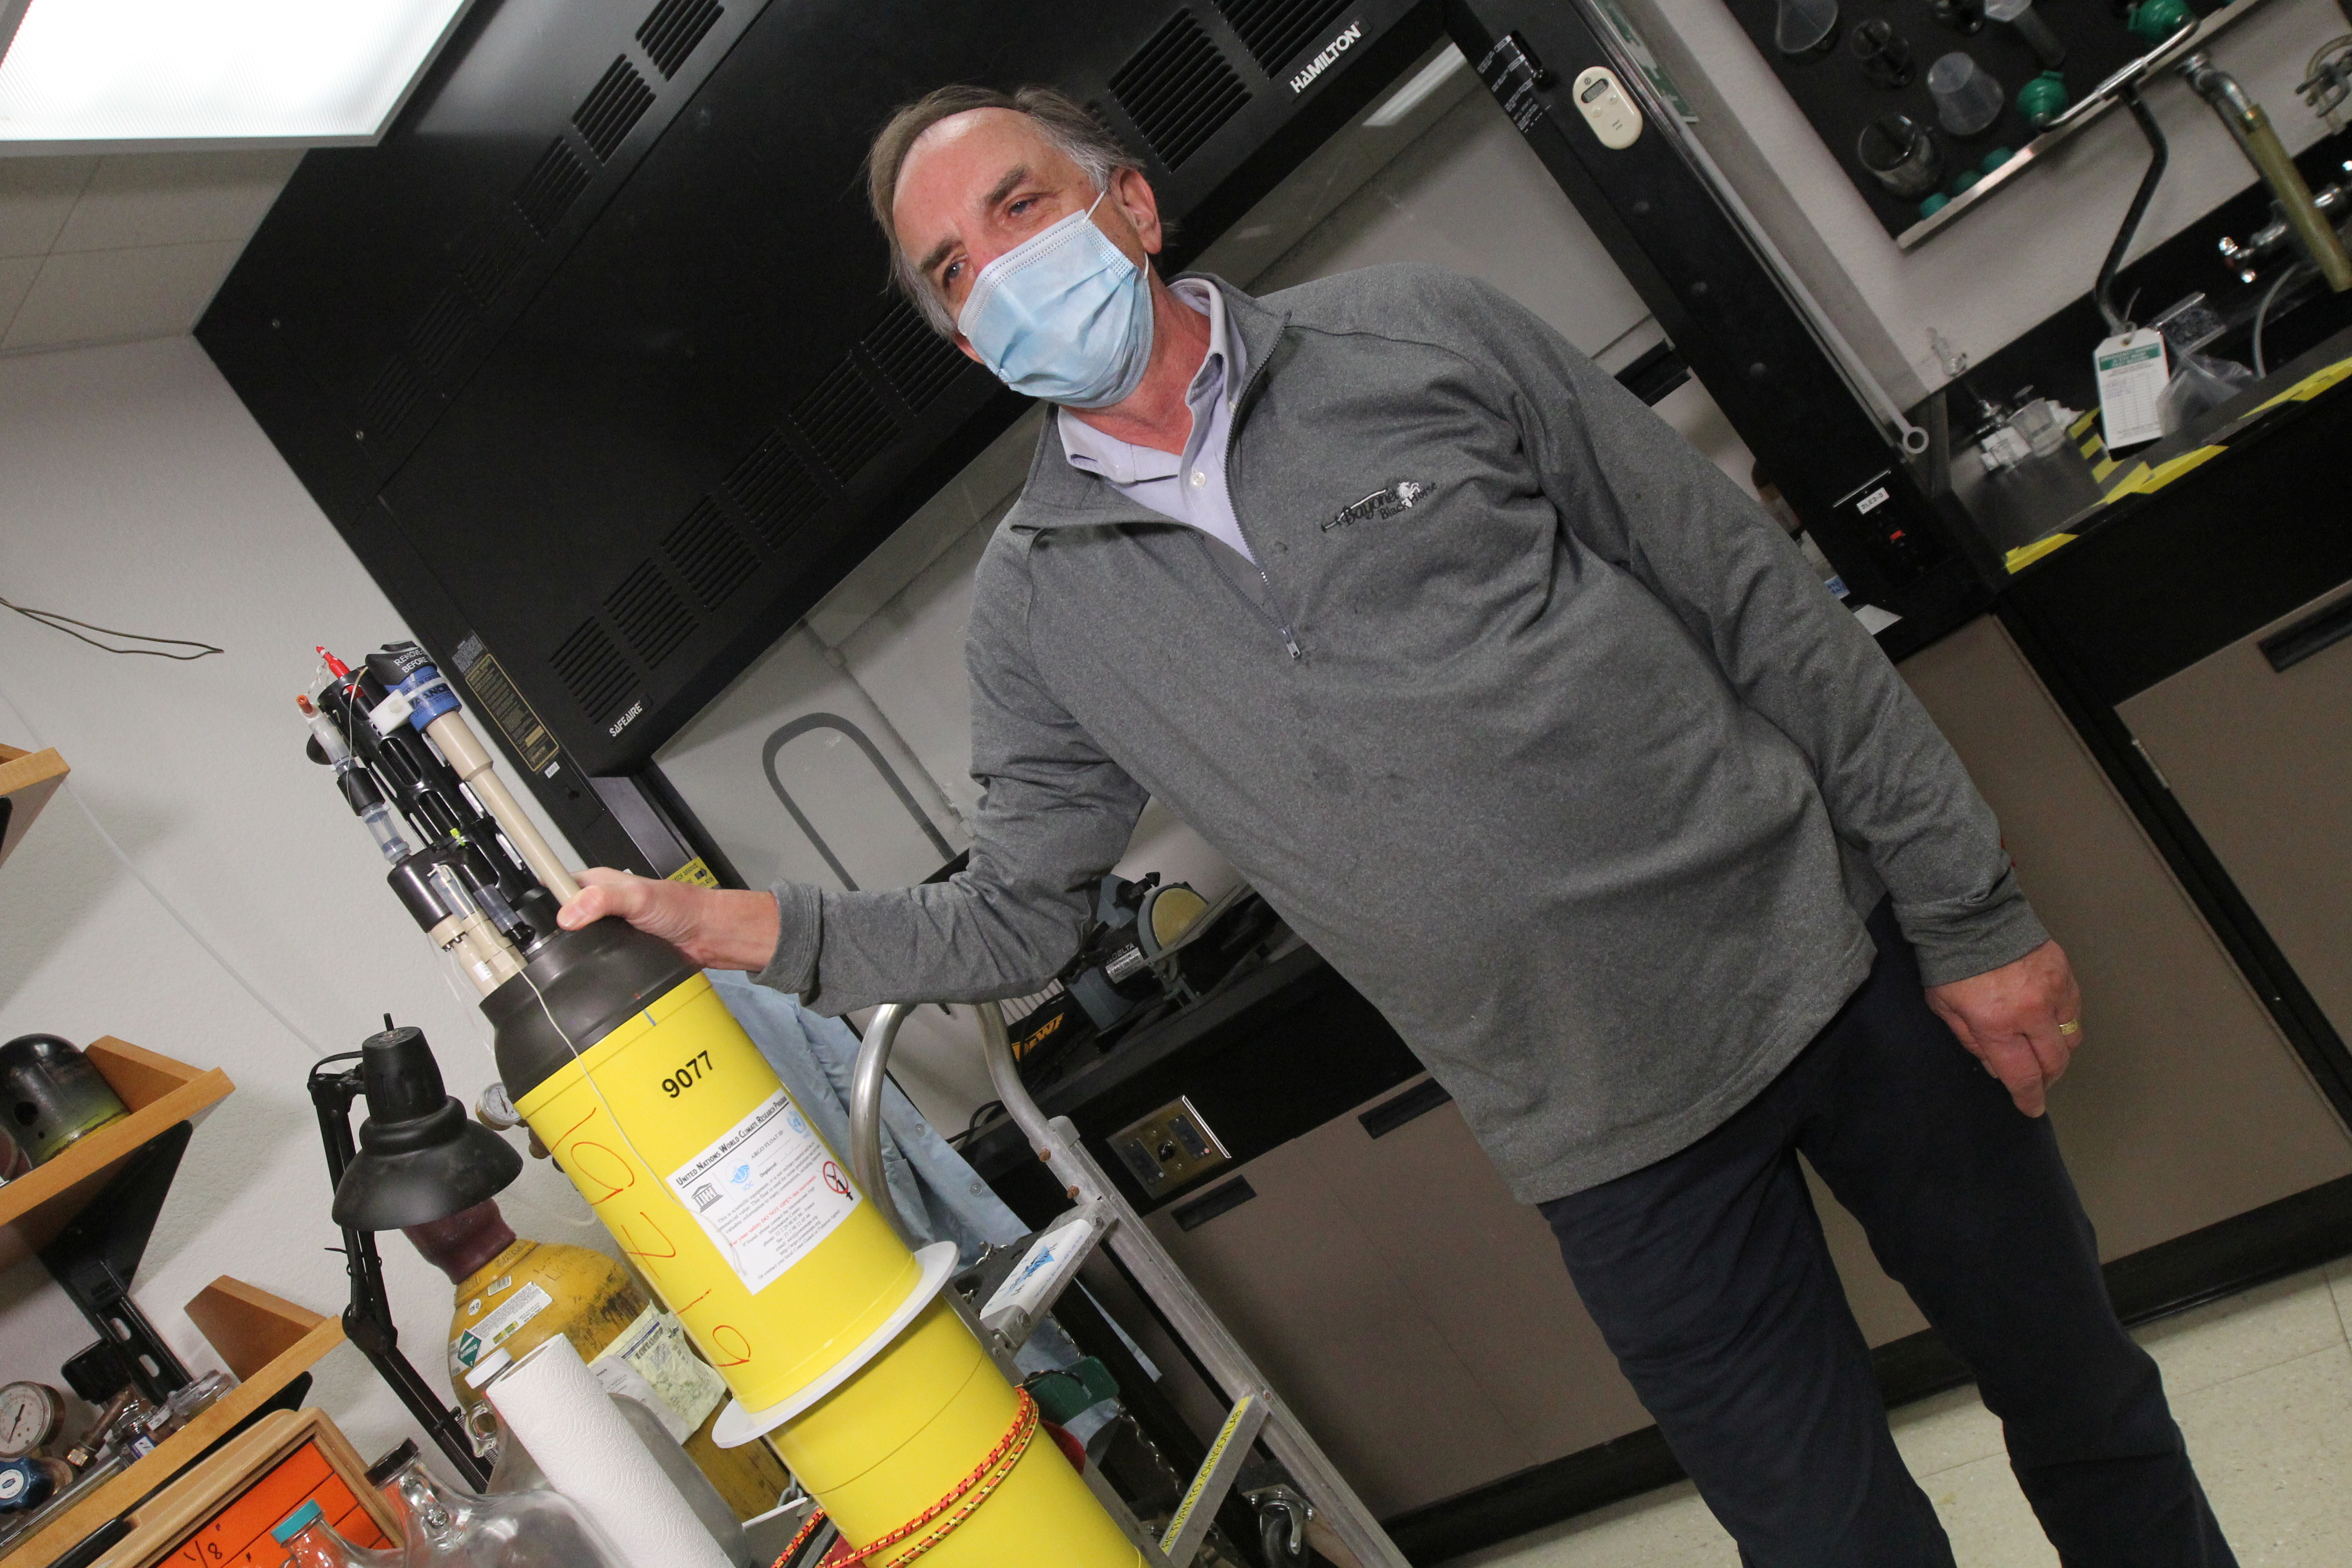 Ken Johnson, project director of the Global Ocean Biogeochemistry Array, stands next to a robotic ocean float in a laboratory at the Monterey Bay Aquarium Research Institute in Moss Landing, California, U.S. on March 9, 2021. Picture taken March 9, 2021. REUTERS/Nathan Frandino